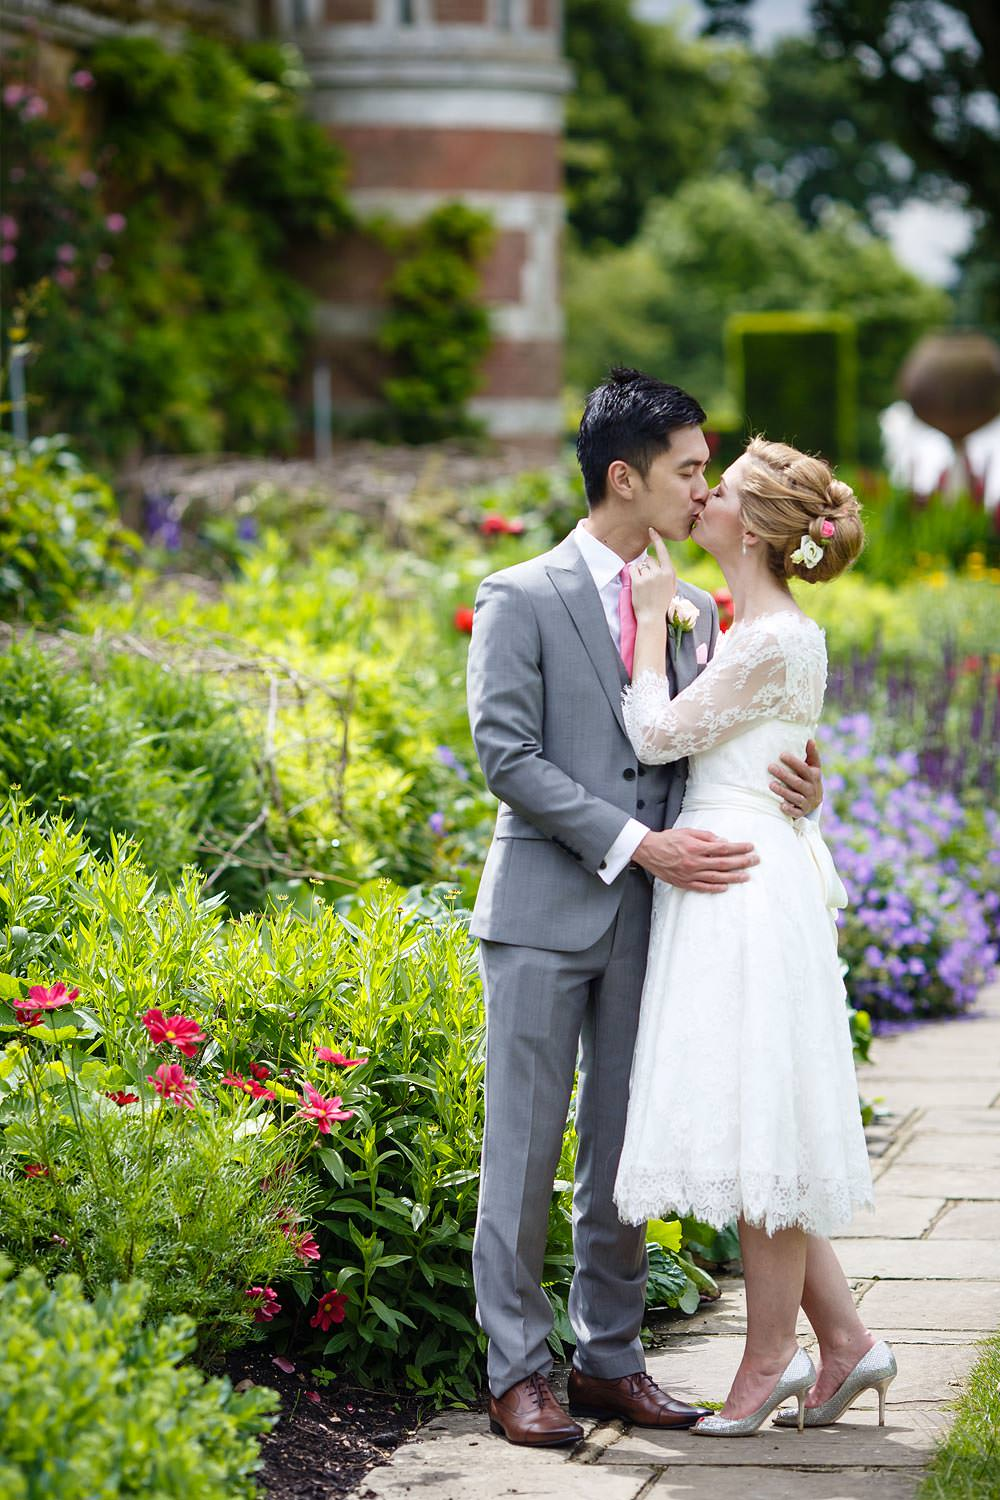 Bride and groom kissing in the gardens of Cliveden House on their wedding day